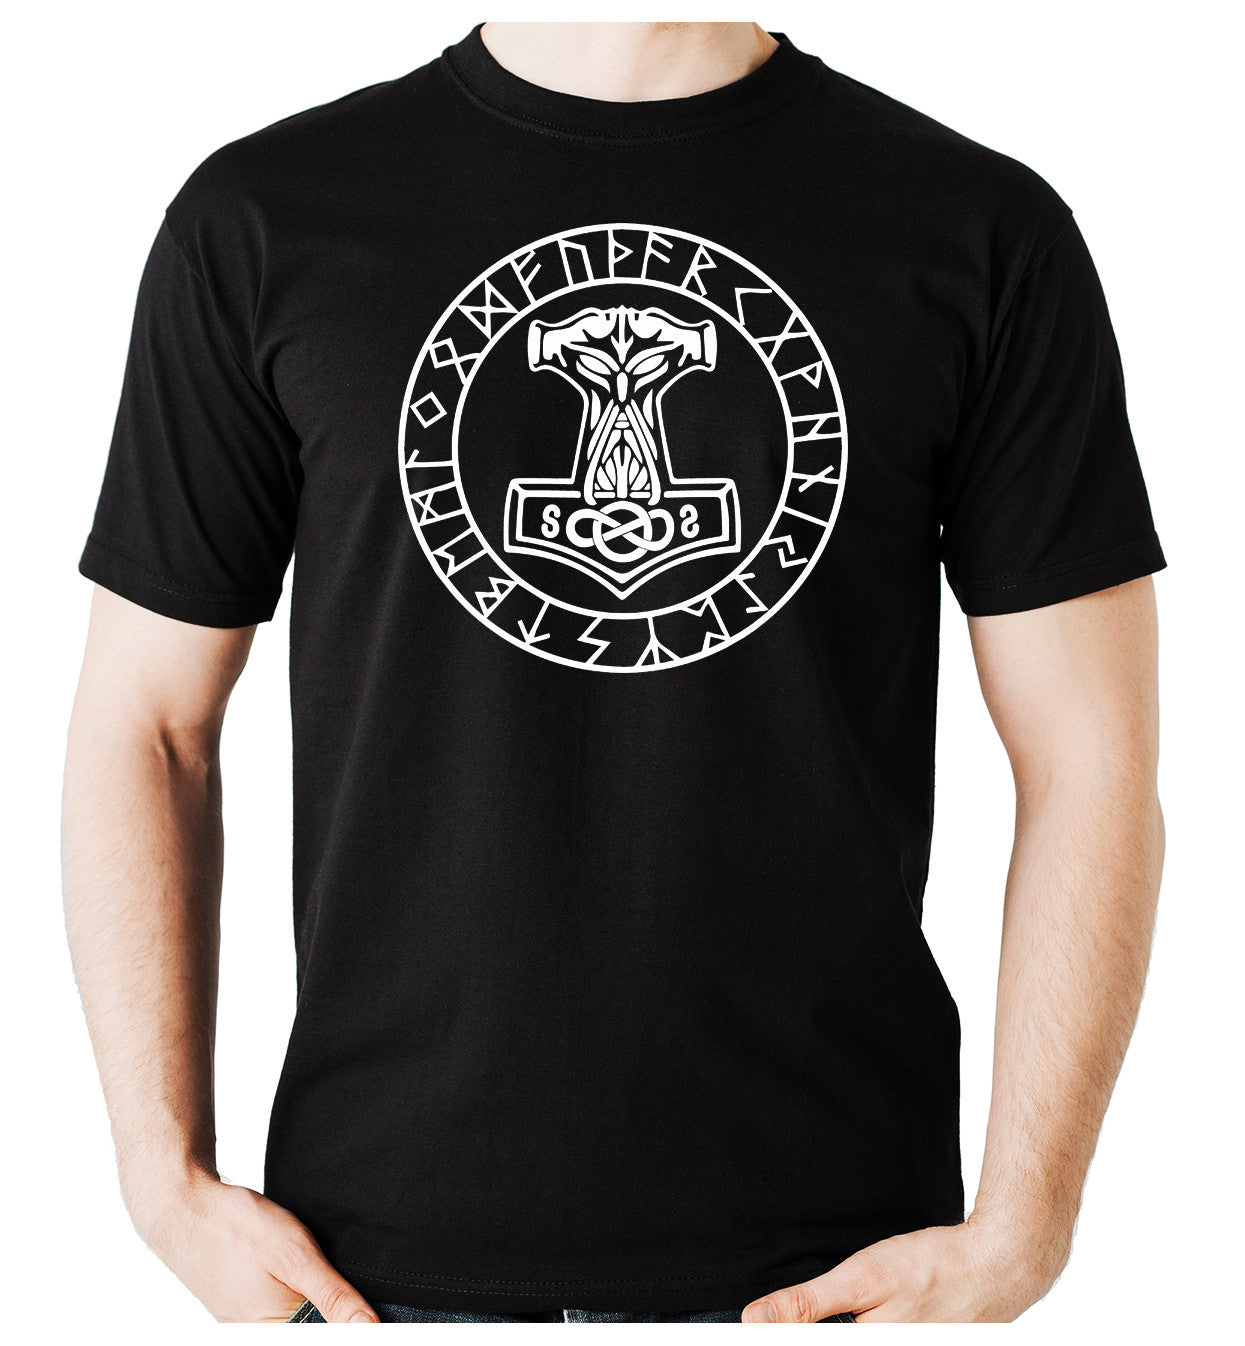 Mjolnir Thor's Mighty Hammer Runes T-Shirt Alternative Clothing Odin Norse God